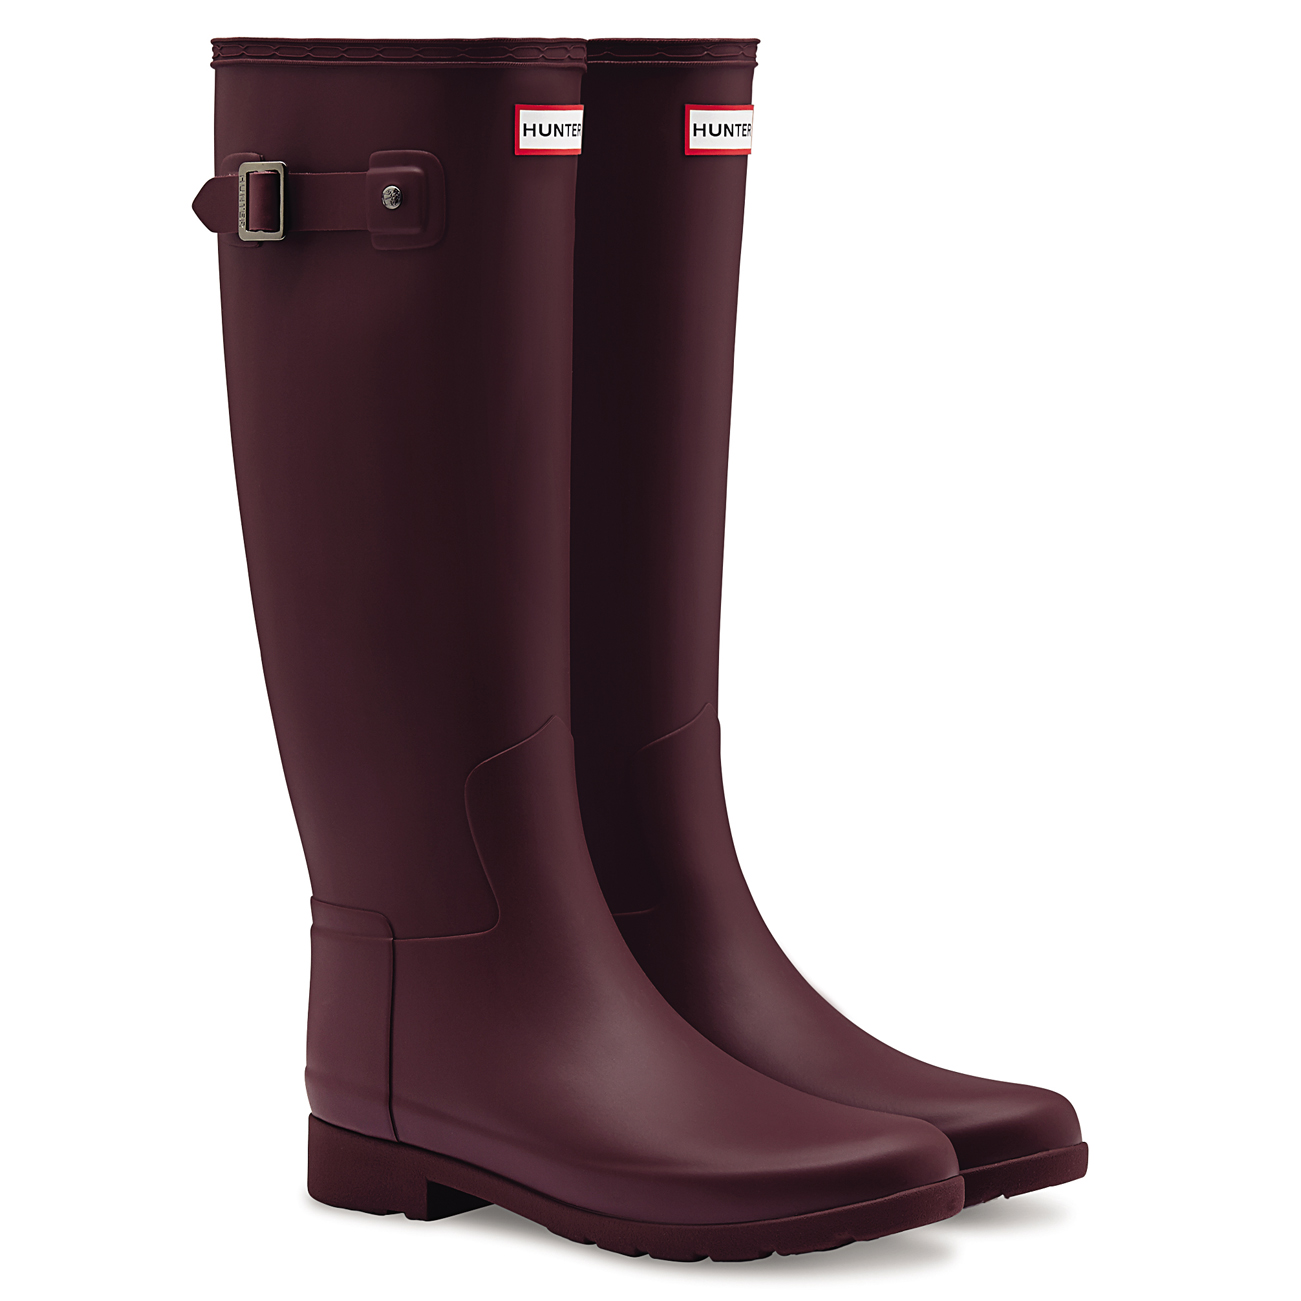 Wonderful Left Hunter Womens Tour Rain Boots Sz 512 Military Red  And The Sizes I Ordered Leave Me Enough Room For The Fleece Liner Socks For Warmth In The Winter The Kids Size Medium 46 Fleece Liner Socks Work For Me In Both  They Just Don